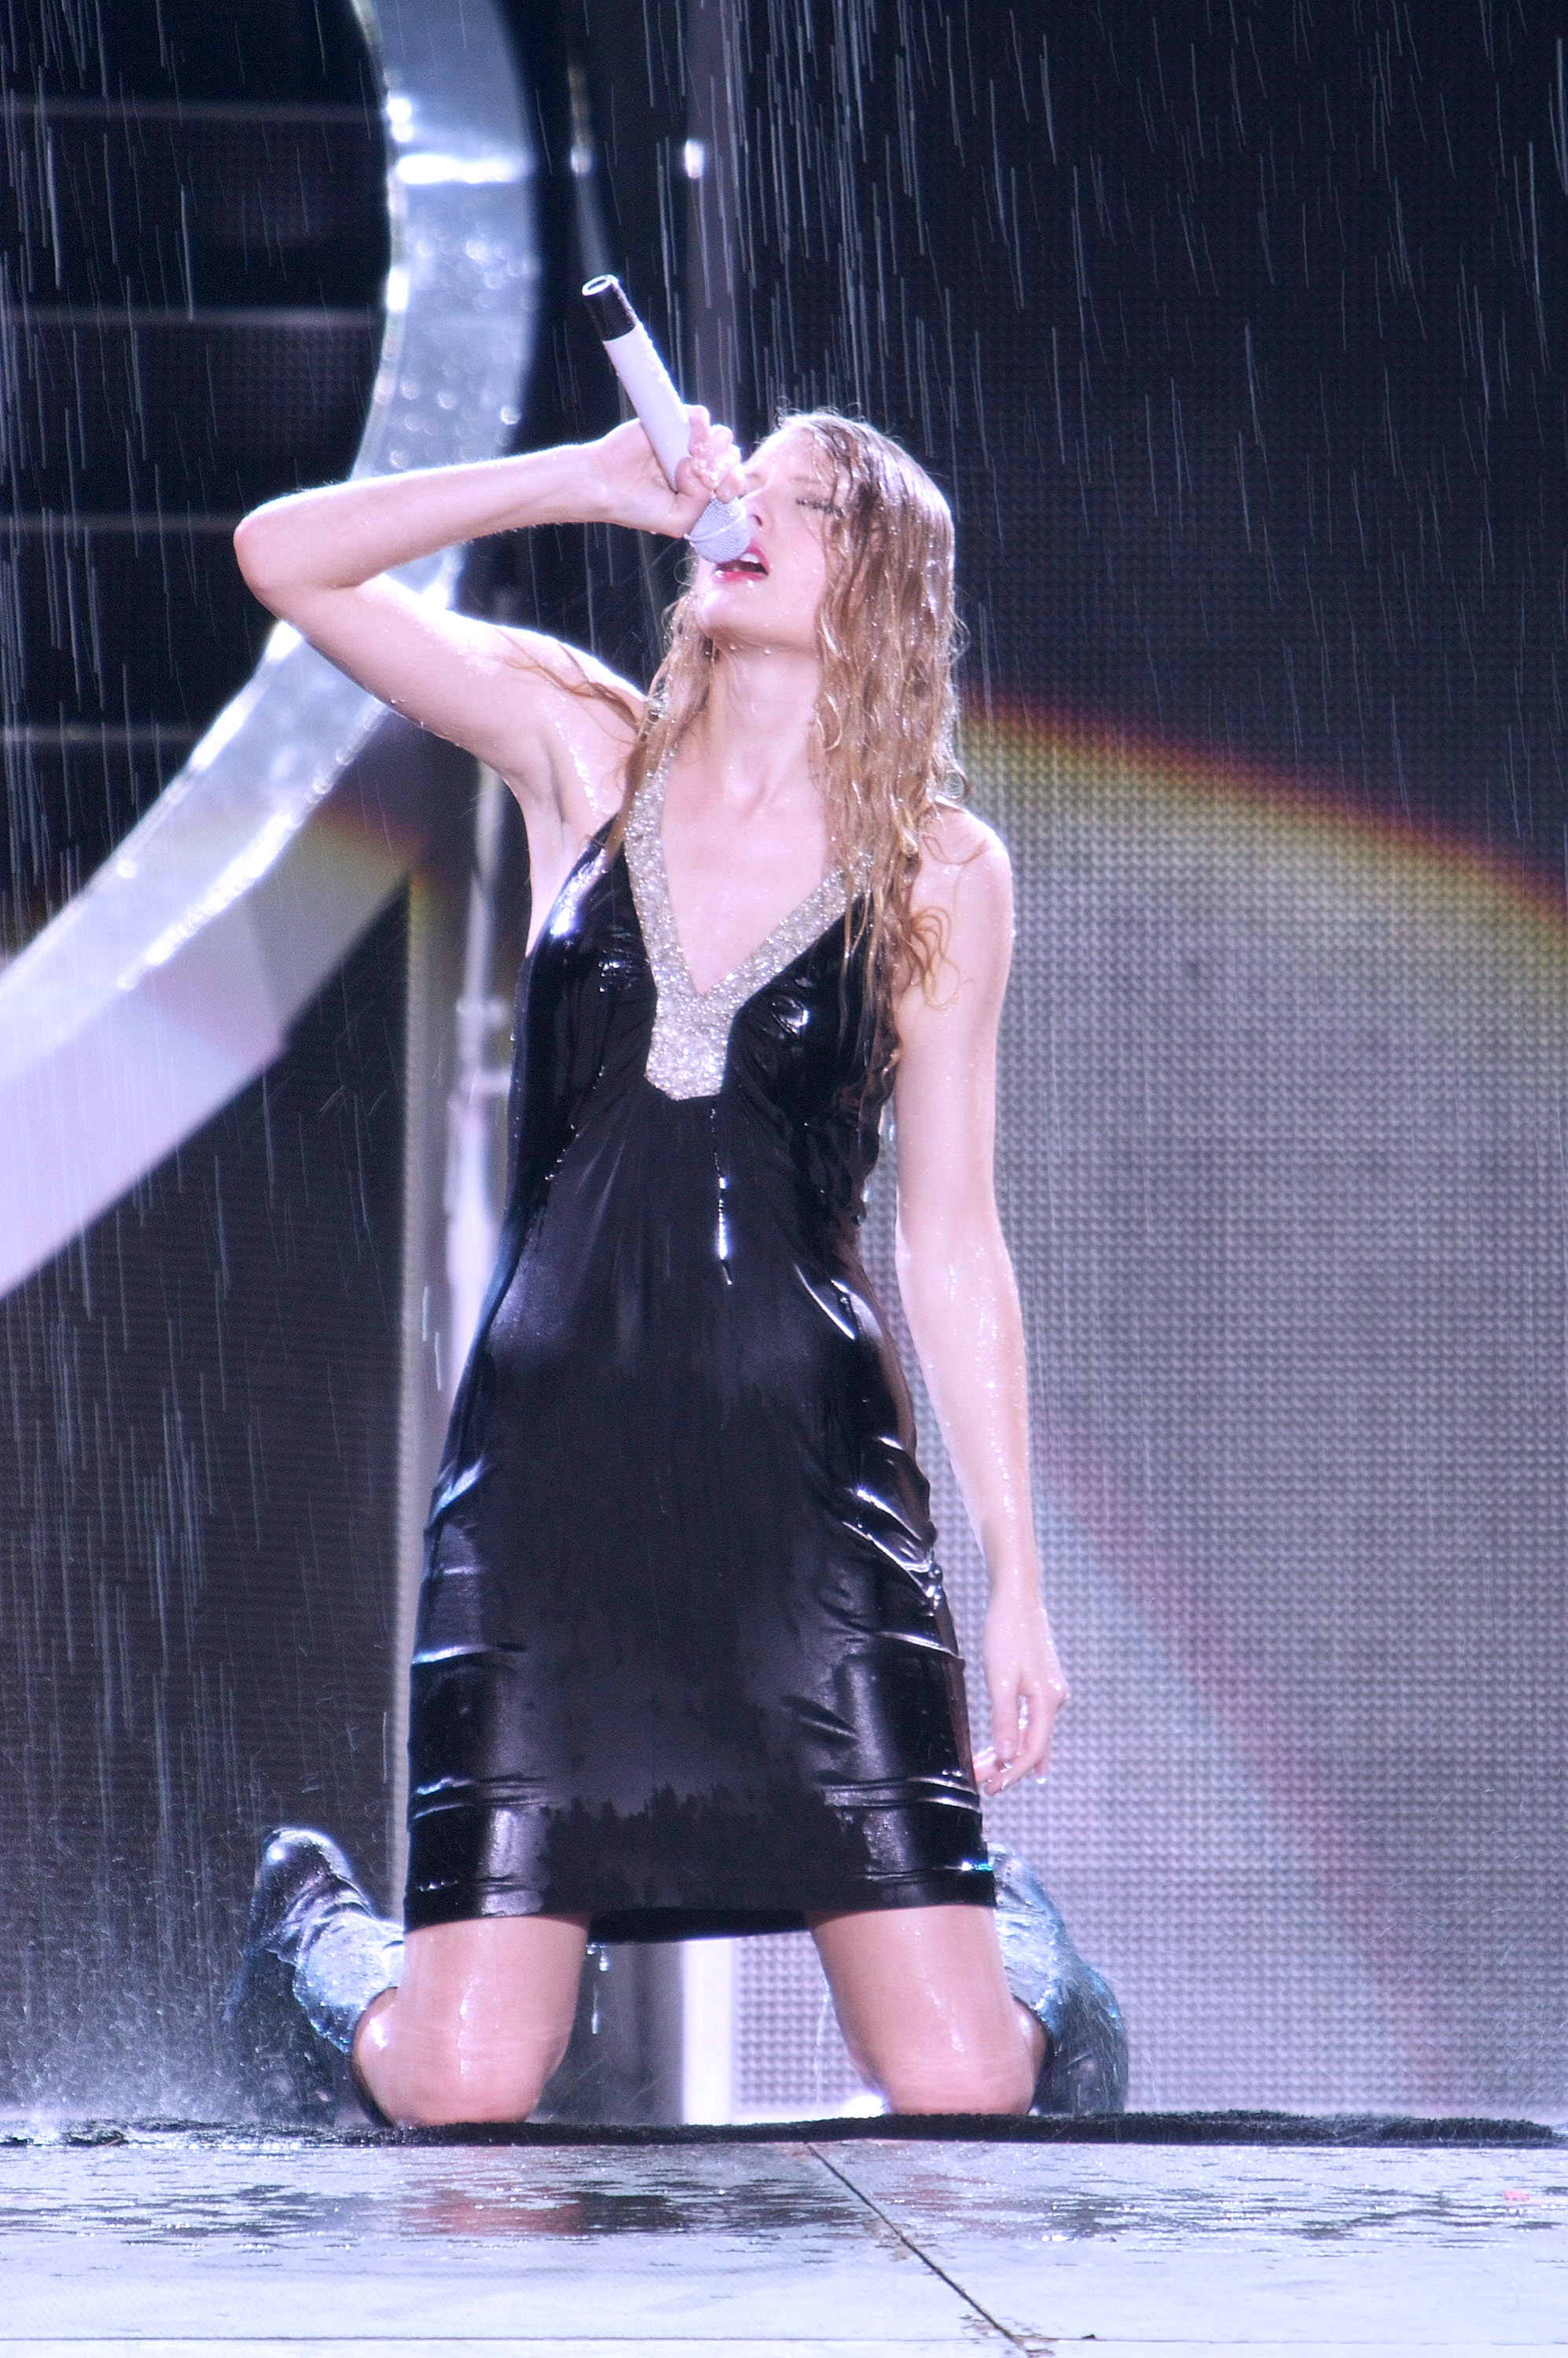 32573_Taylor_swift_performs_her_Fearless_Tour_at_Tiger_Stadium_014_122_143lo.jpg